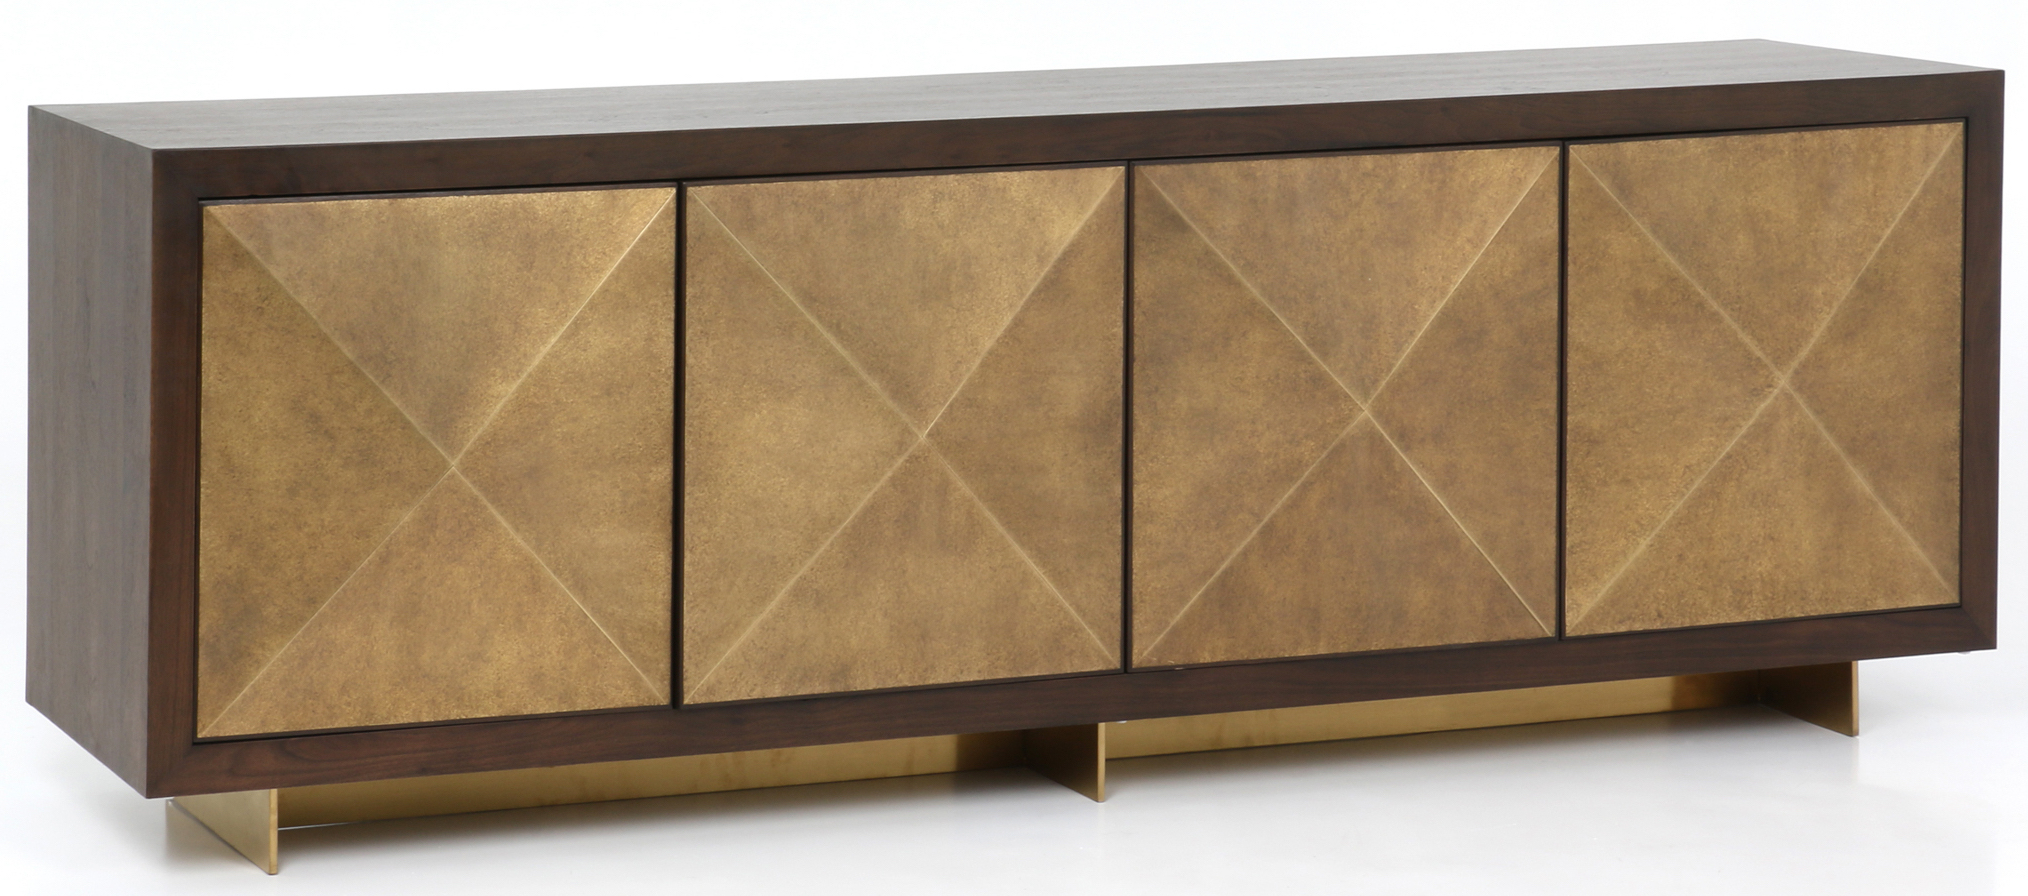 Cabinets, Consoles & Sofa Tables | Htgt Furniture Inside Gunmetal Perforated Brass Media Console Tables (View 2 of 20)